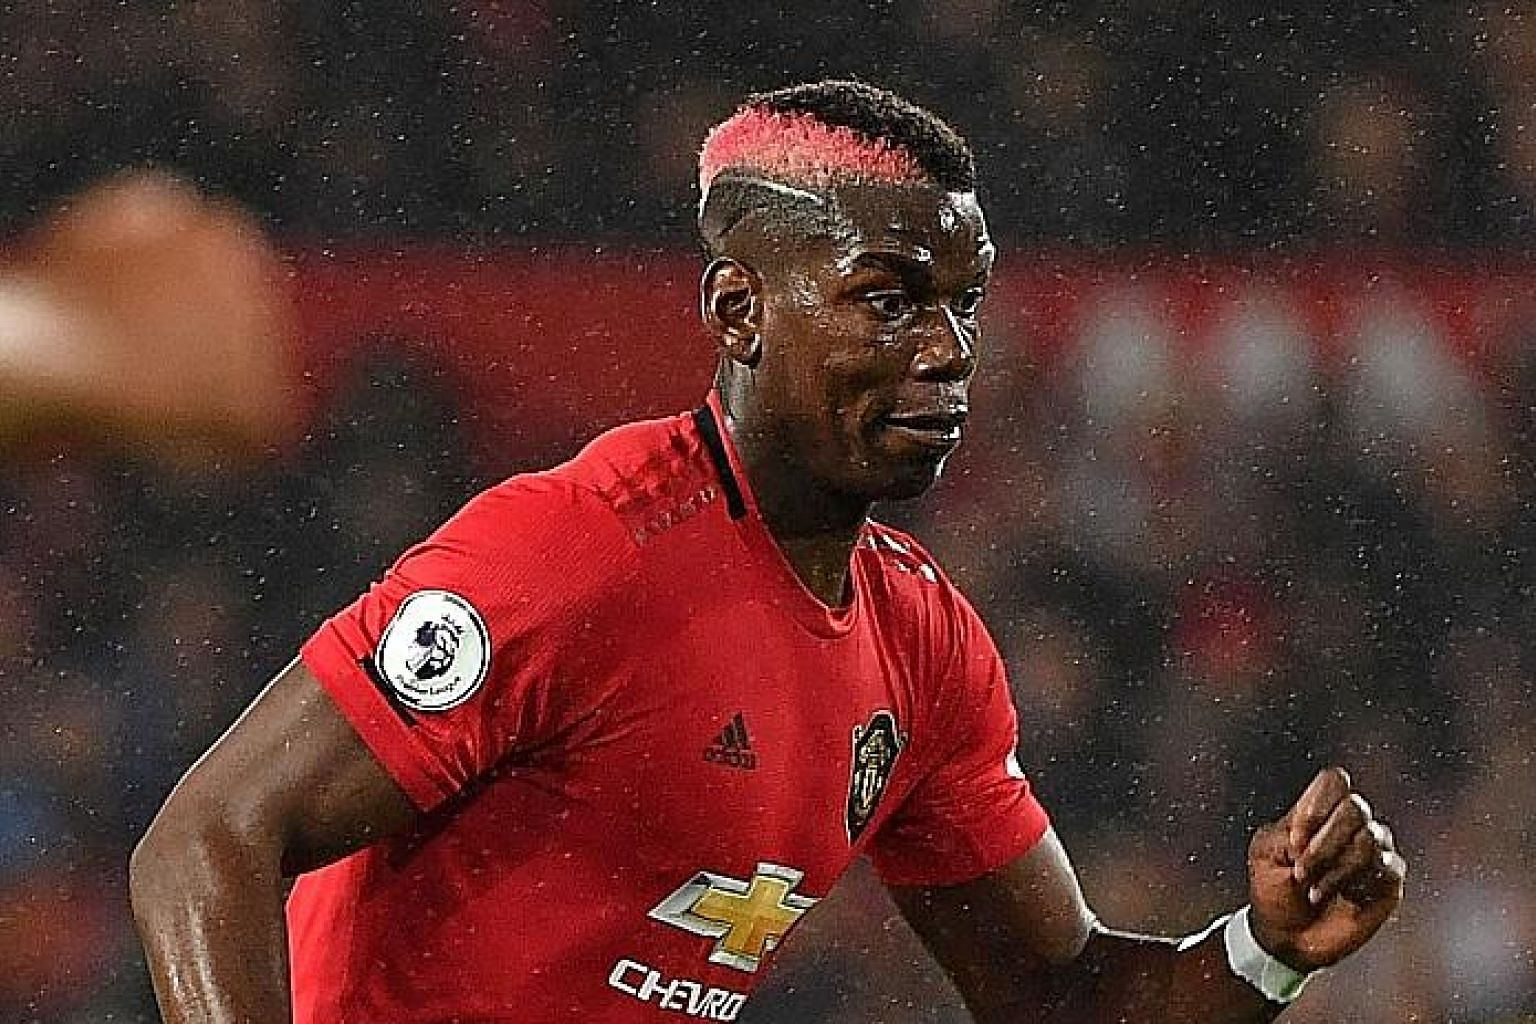 Manchester United's Paul Pogba appears to have lost the race to be fit for Liverpool's visit on Sunday. PHOTO: AGENCE FRANCE-PRESSE